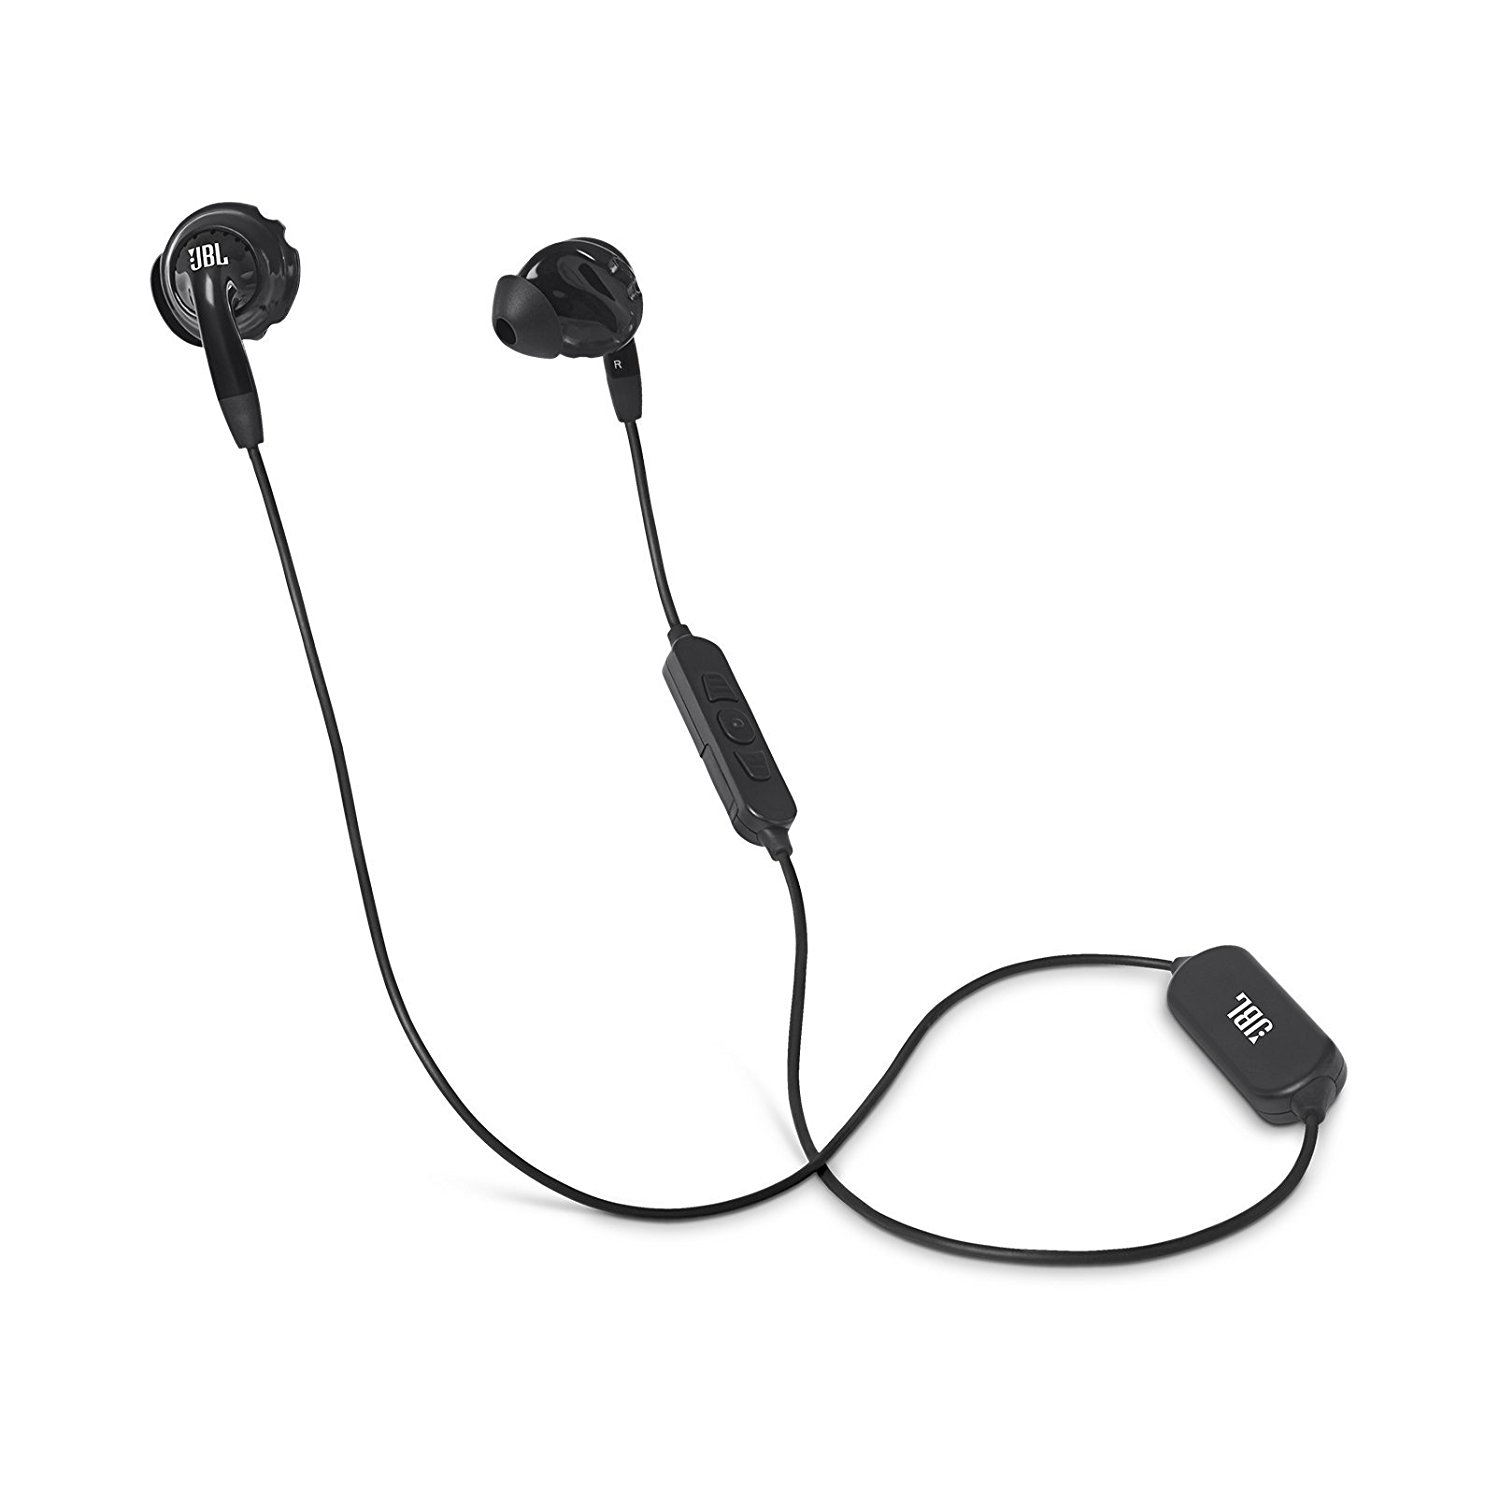 JBL Inspire 500 In Ear Wireless Sport Headphones, Three-Button Remote Control